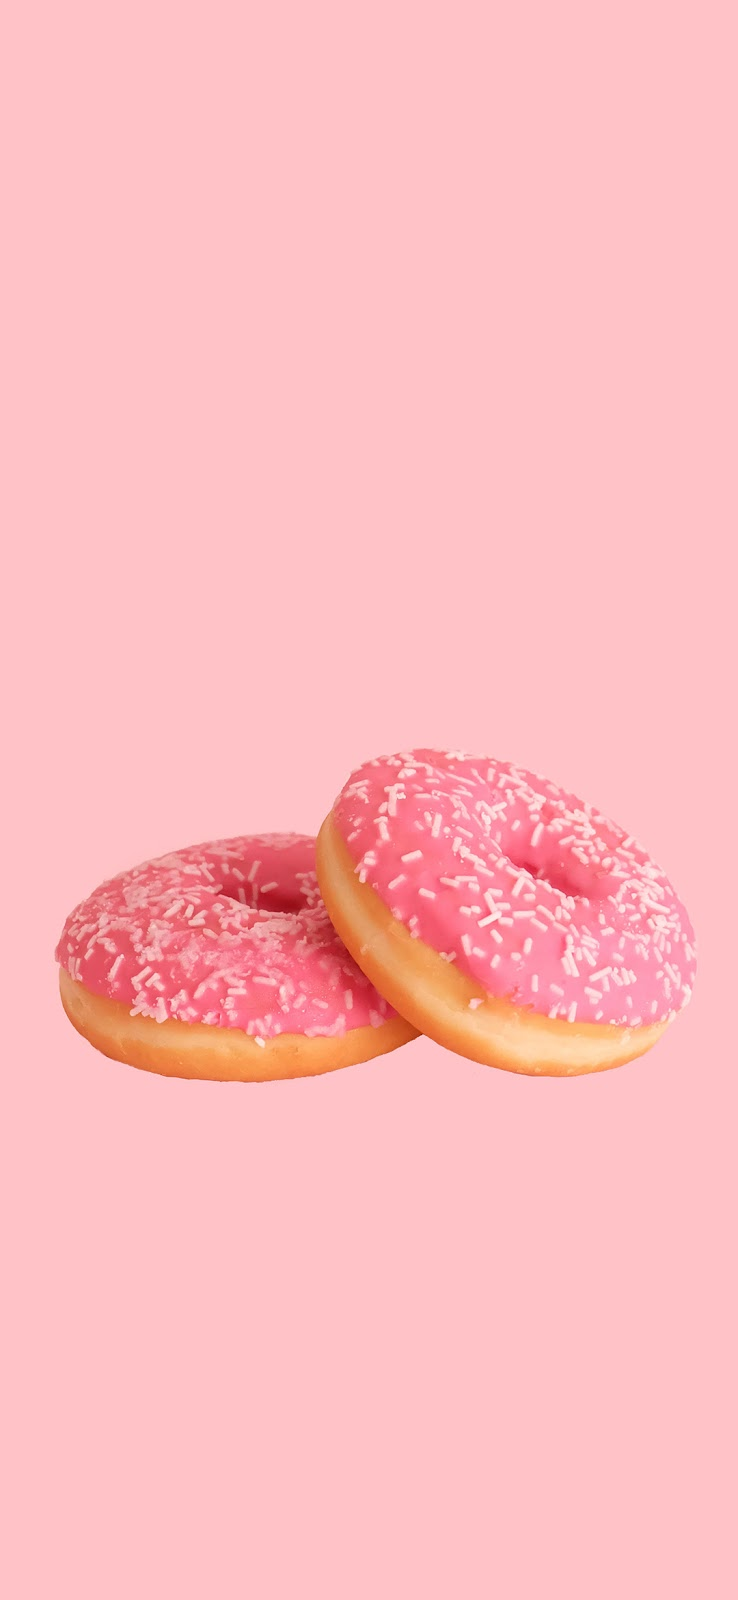 strawberry pink doughnuts with sprinkles wallpaper